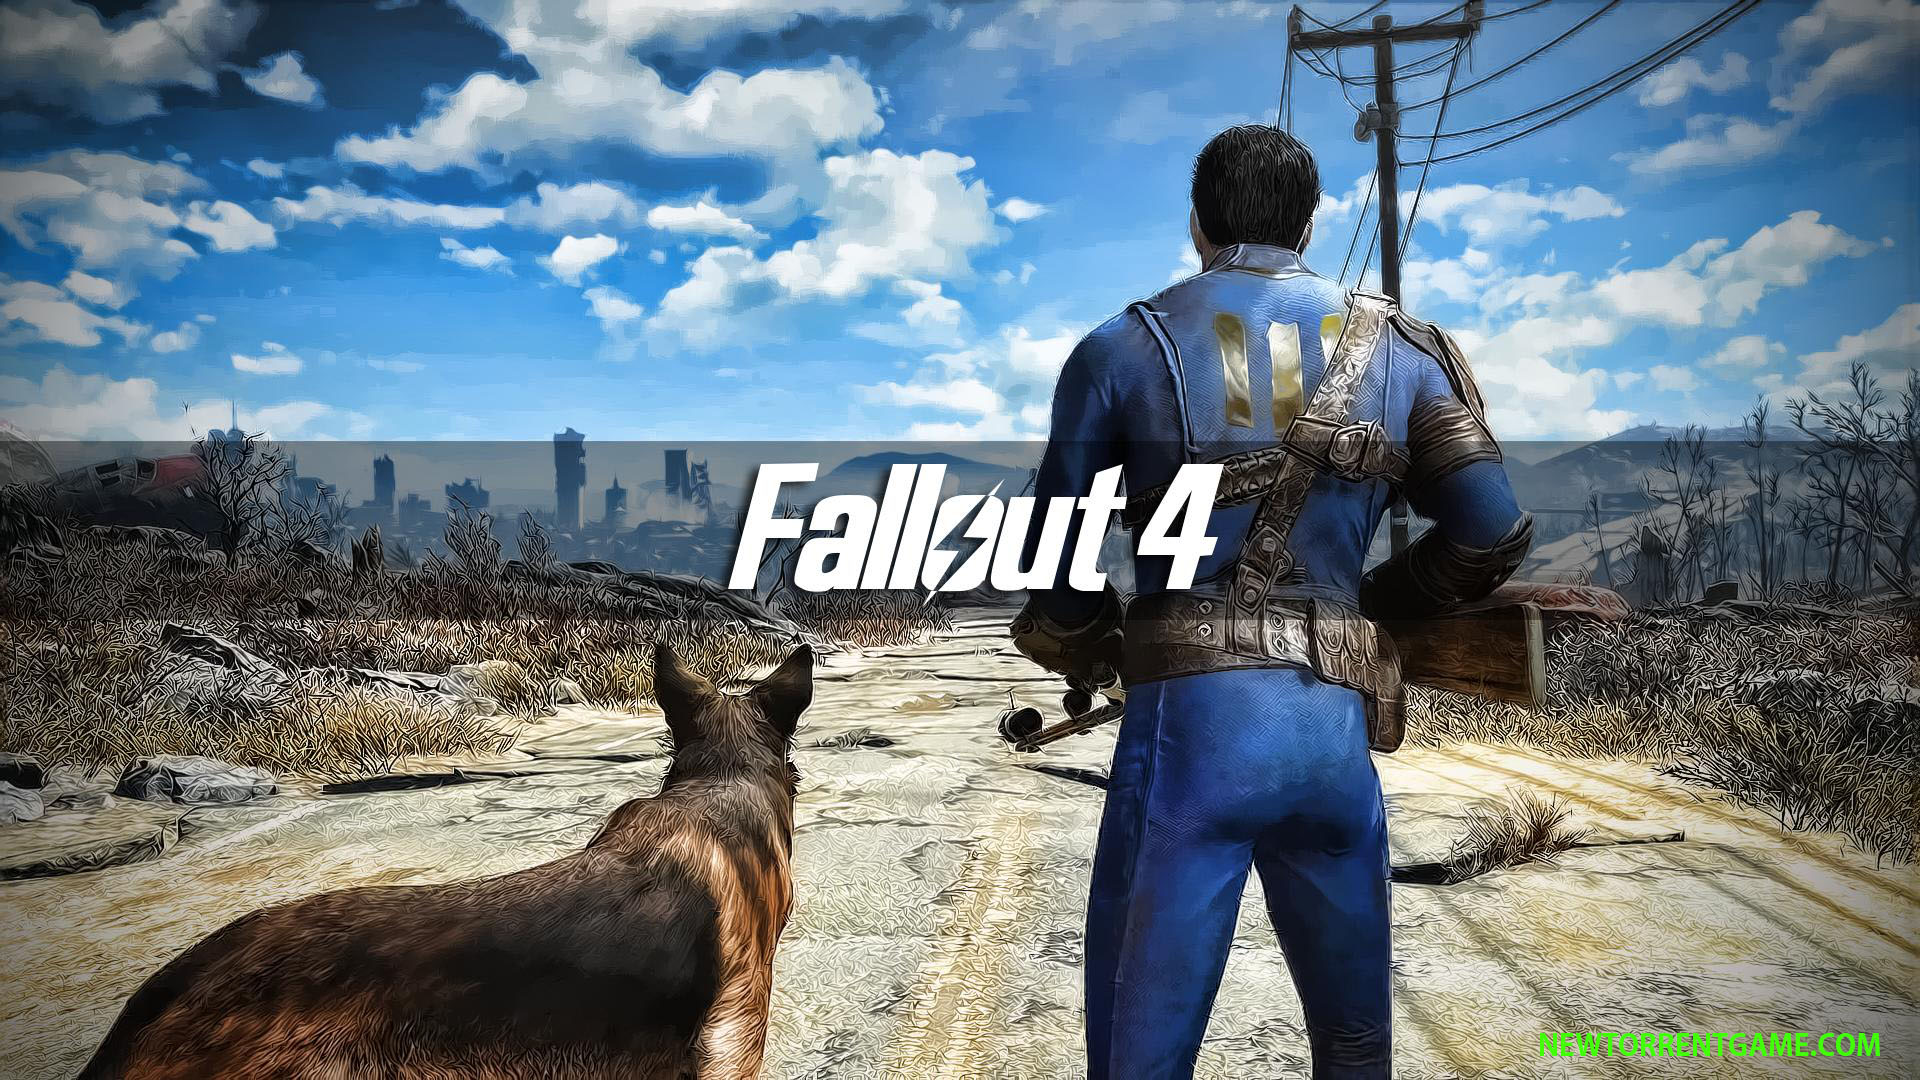 Fallout 4 codex crack download